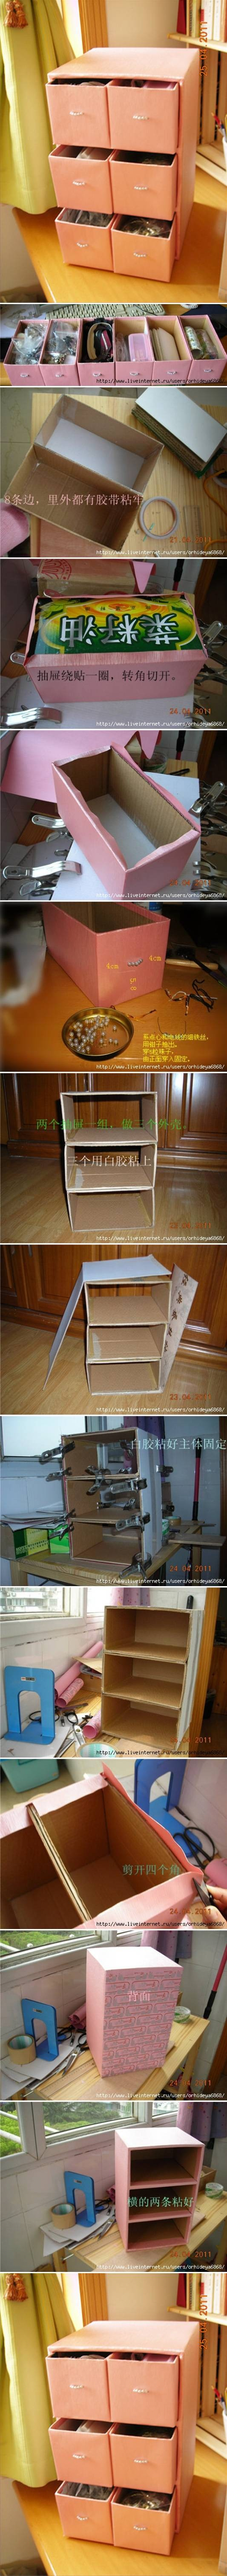 DIY-Small-Cardboard-Chest.jpg